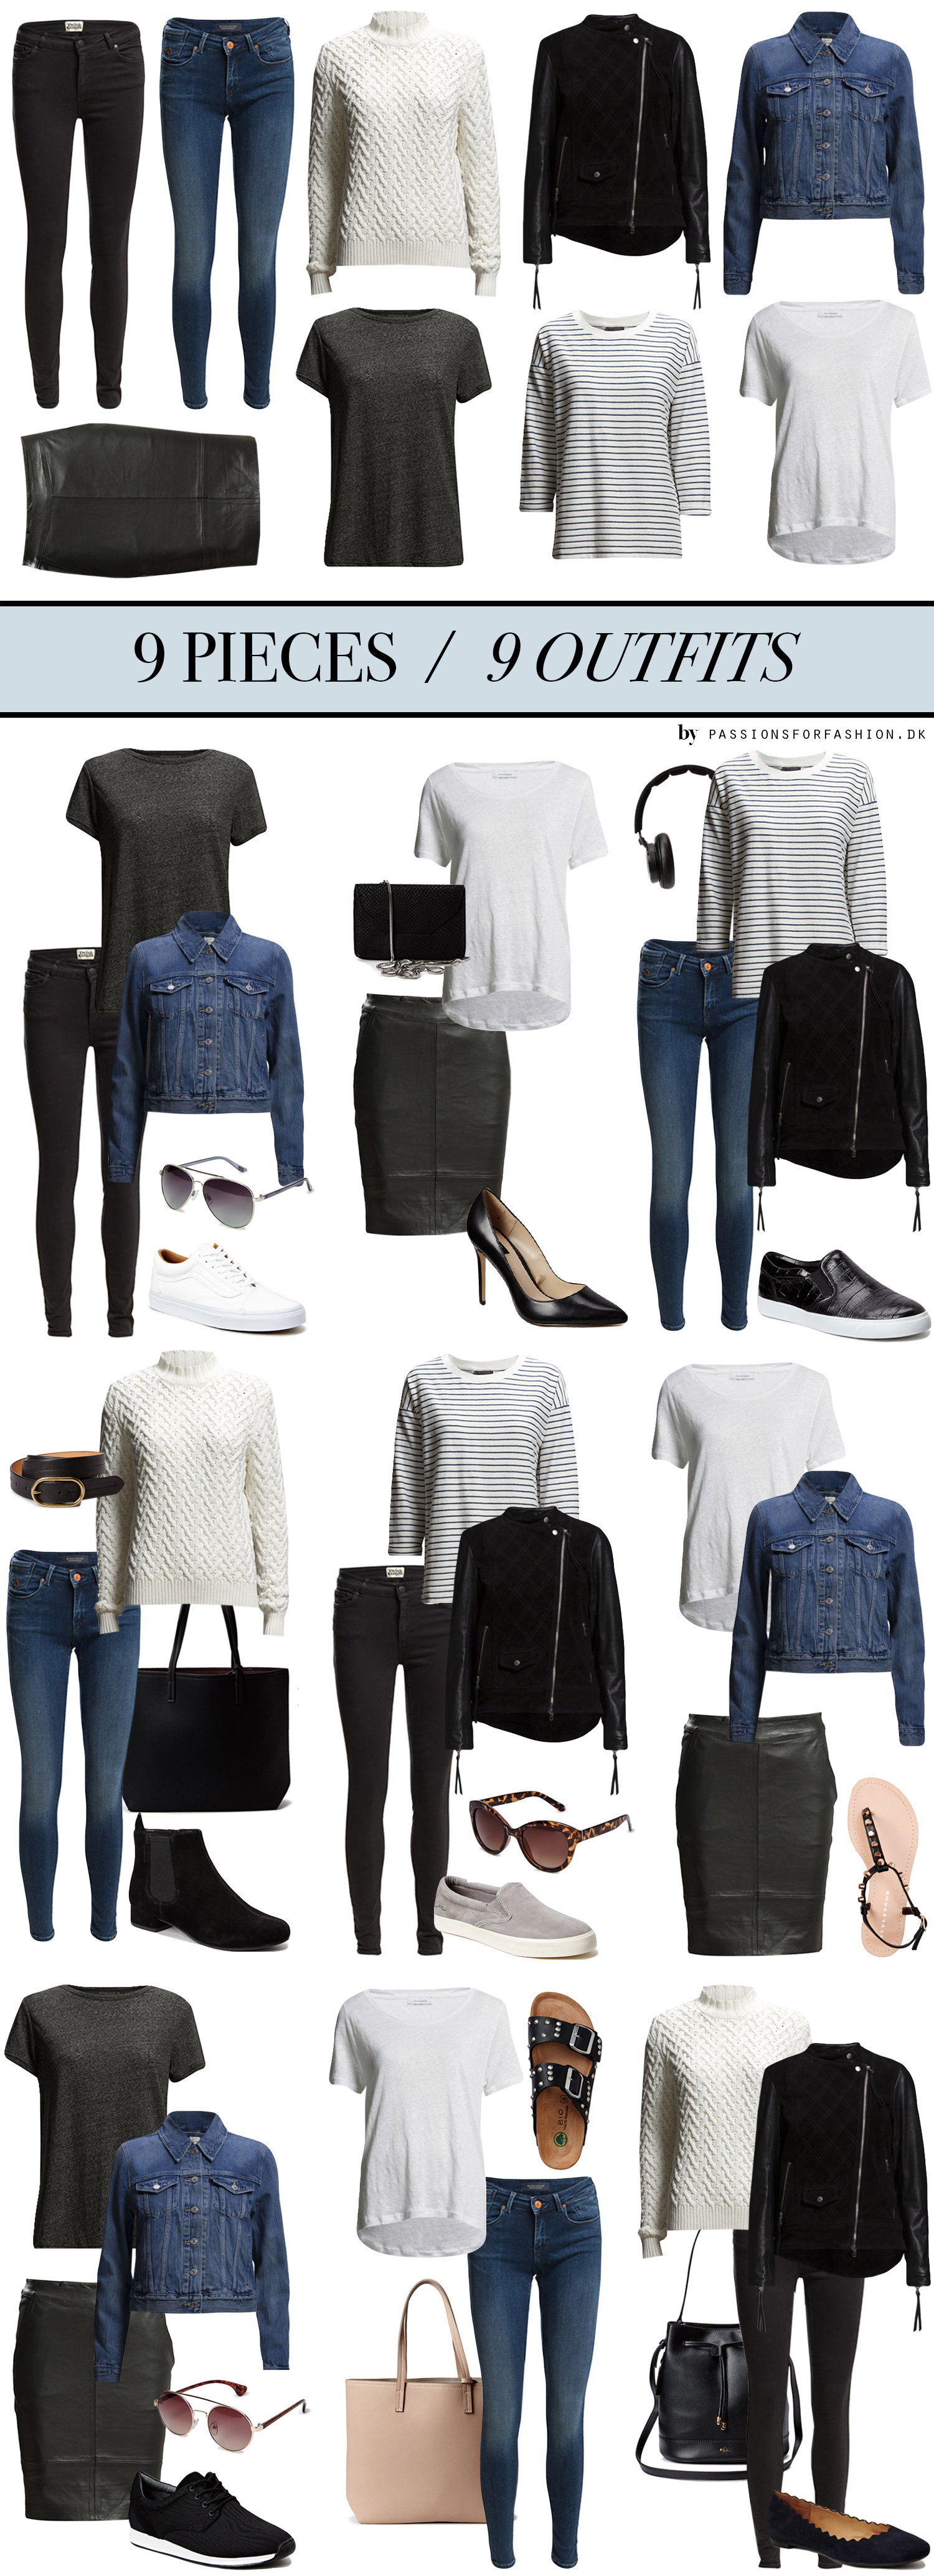 9-pieces-9-outfits@2x